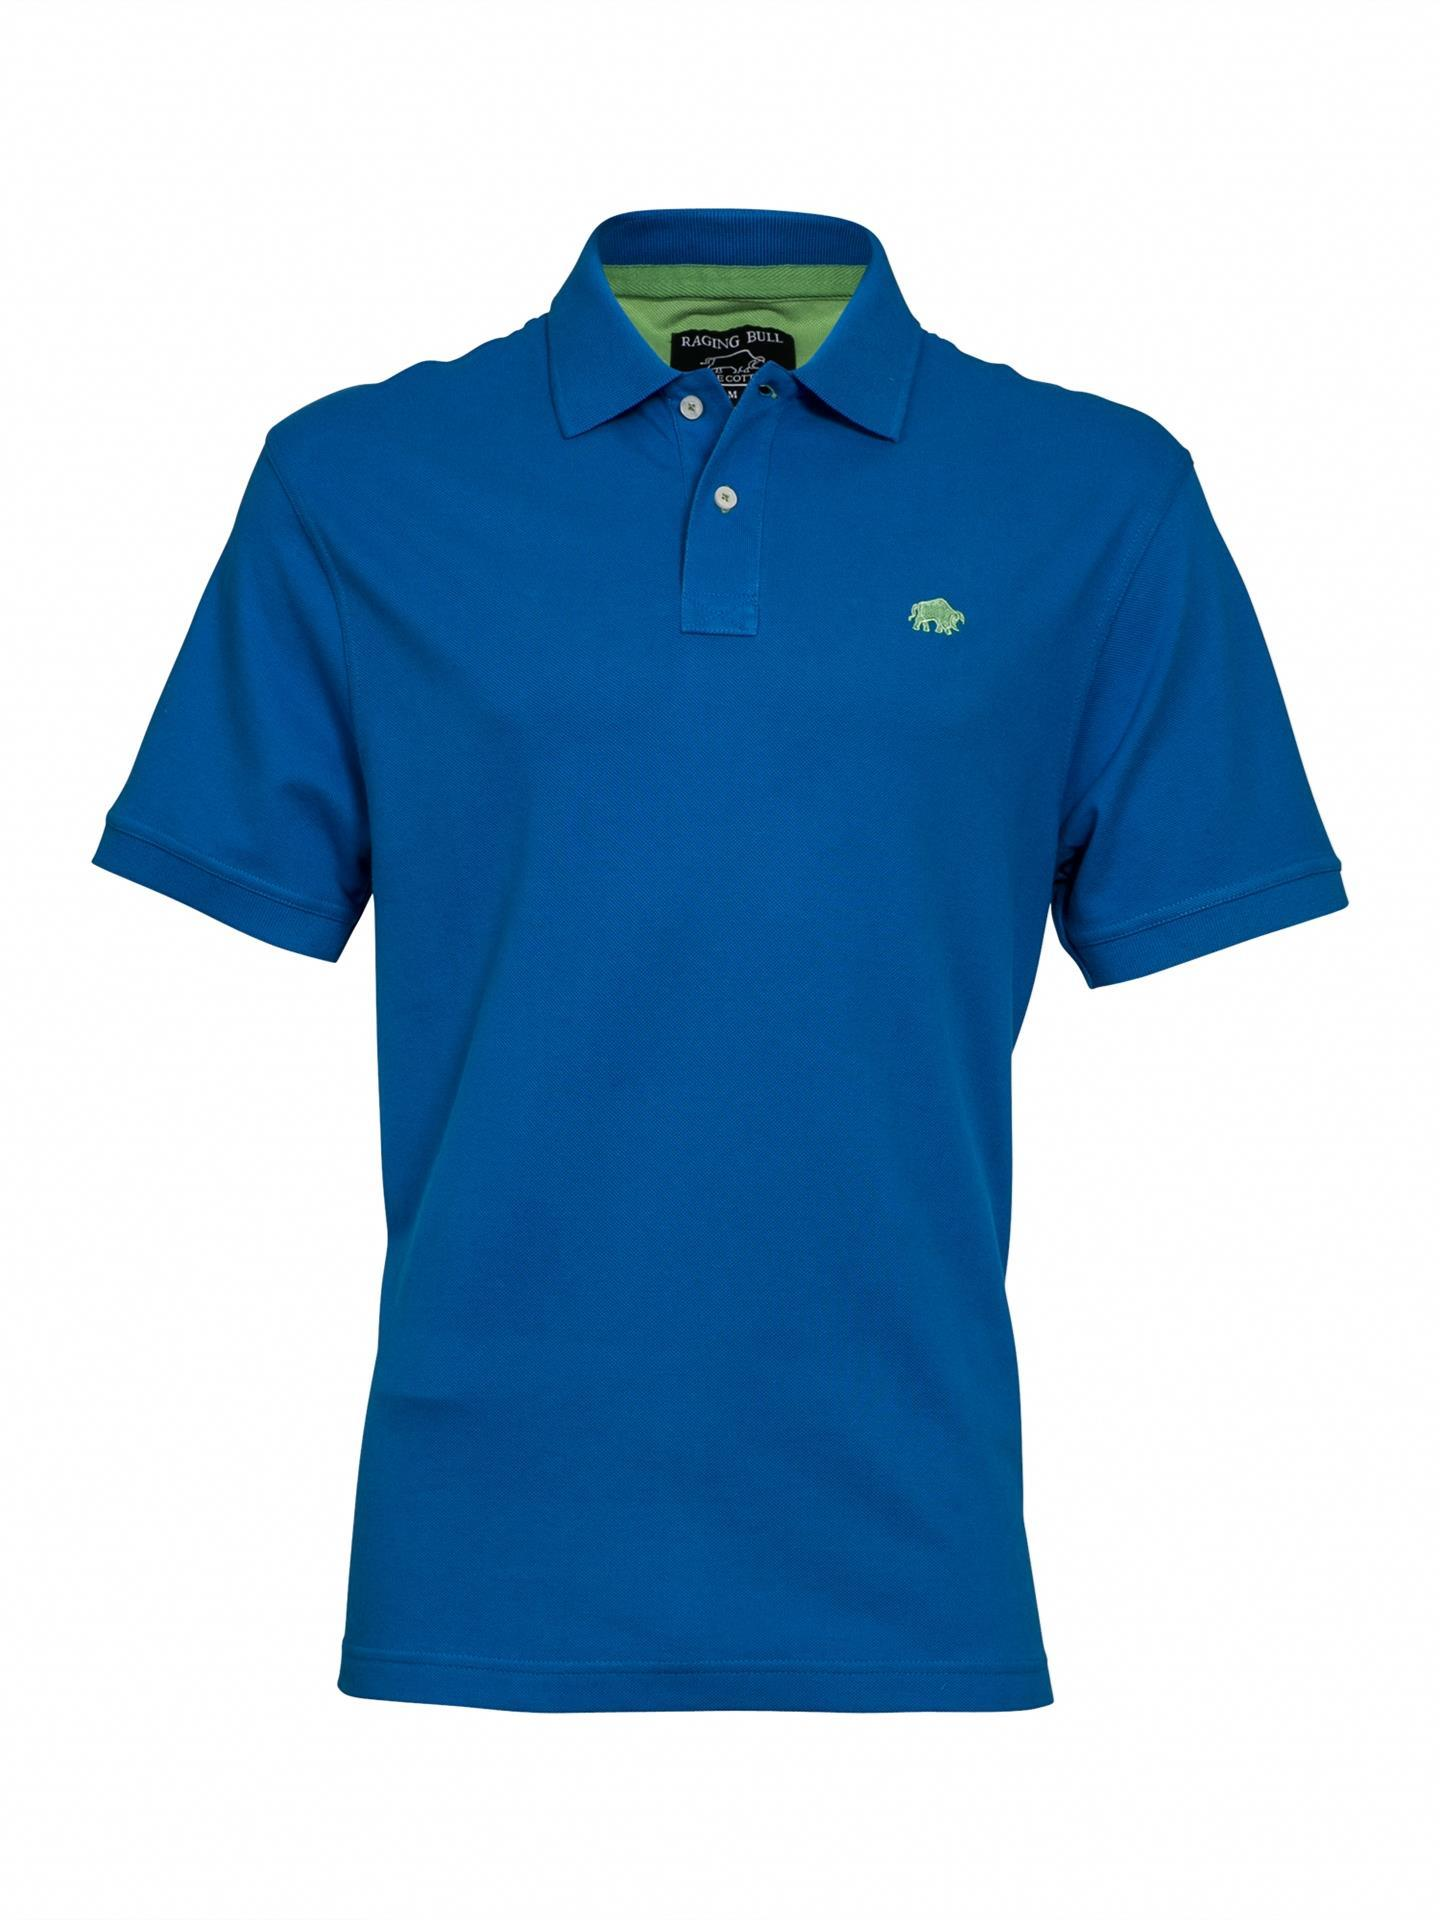 signature plain pique polo shirt (cobalt blue)